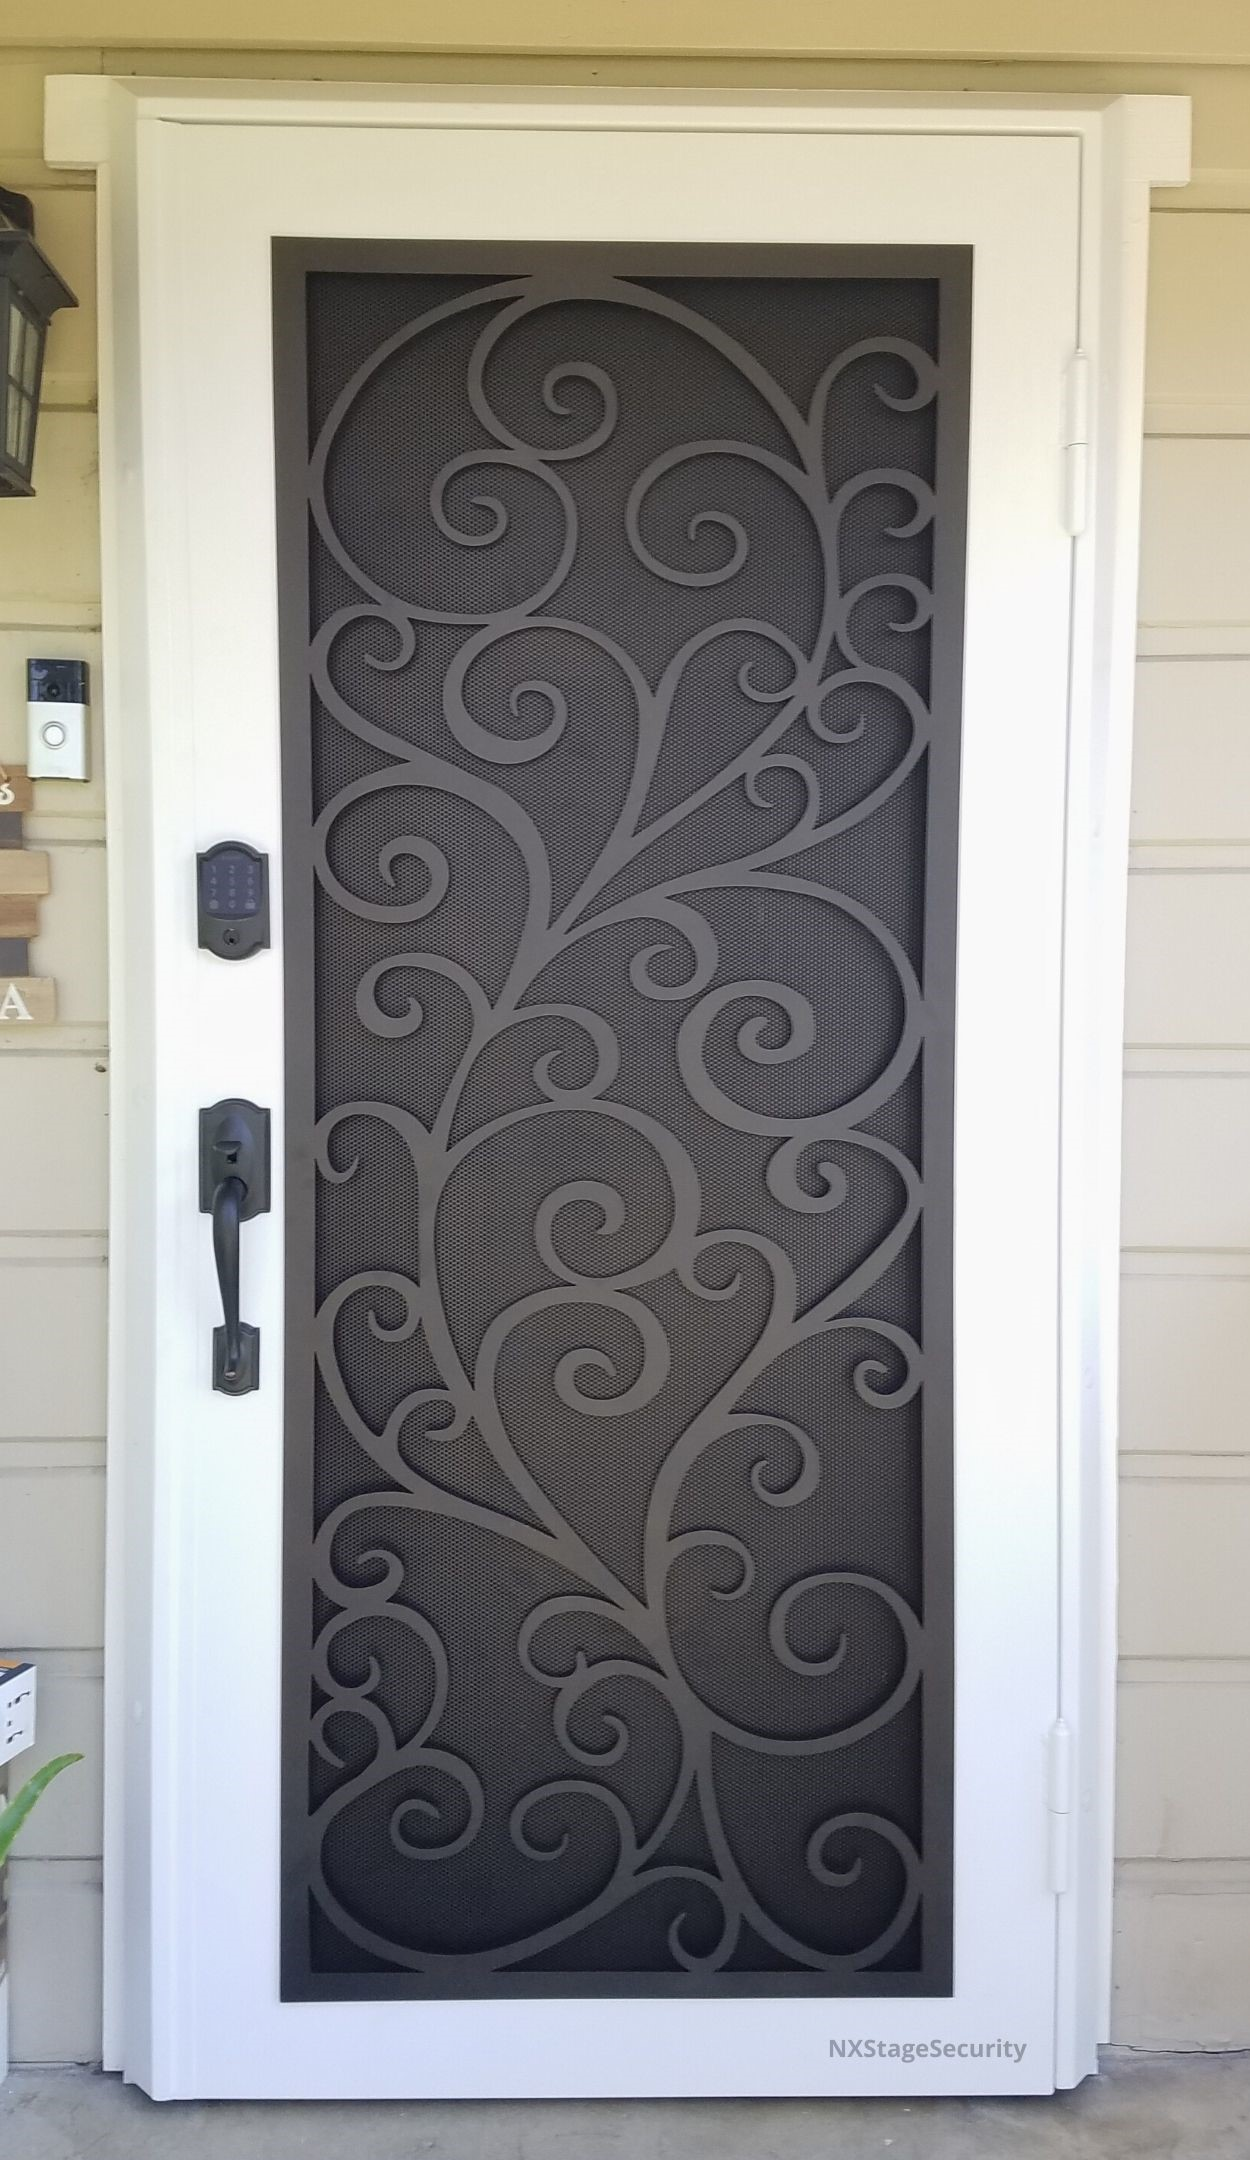 SINGLE SECURITY SCREEN DOOR WITH SCROLL ART WHITE BLACK MIKES MOBILE STEVES MOBILE SECURITY